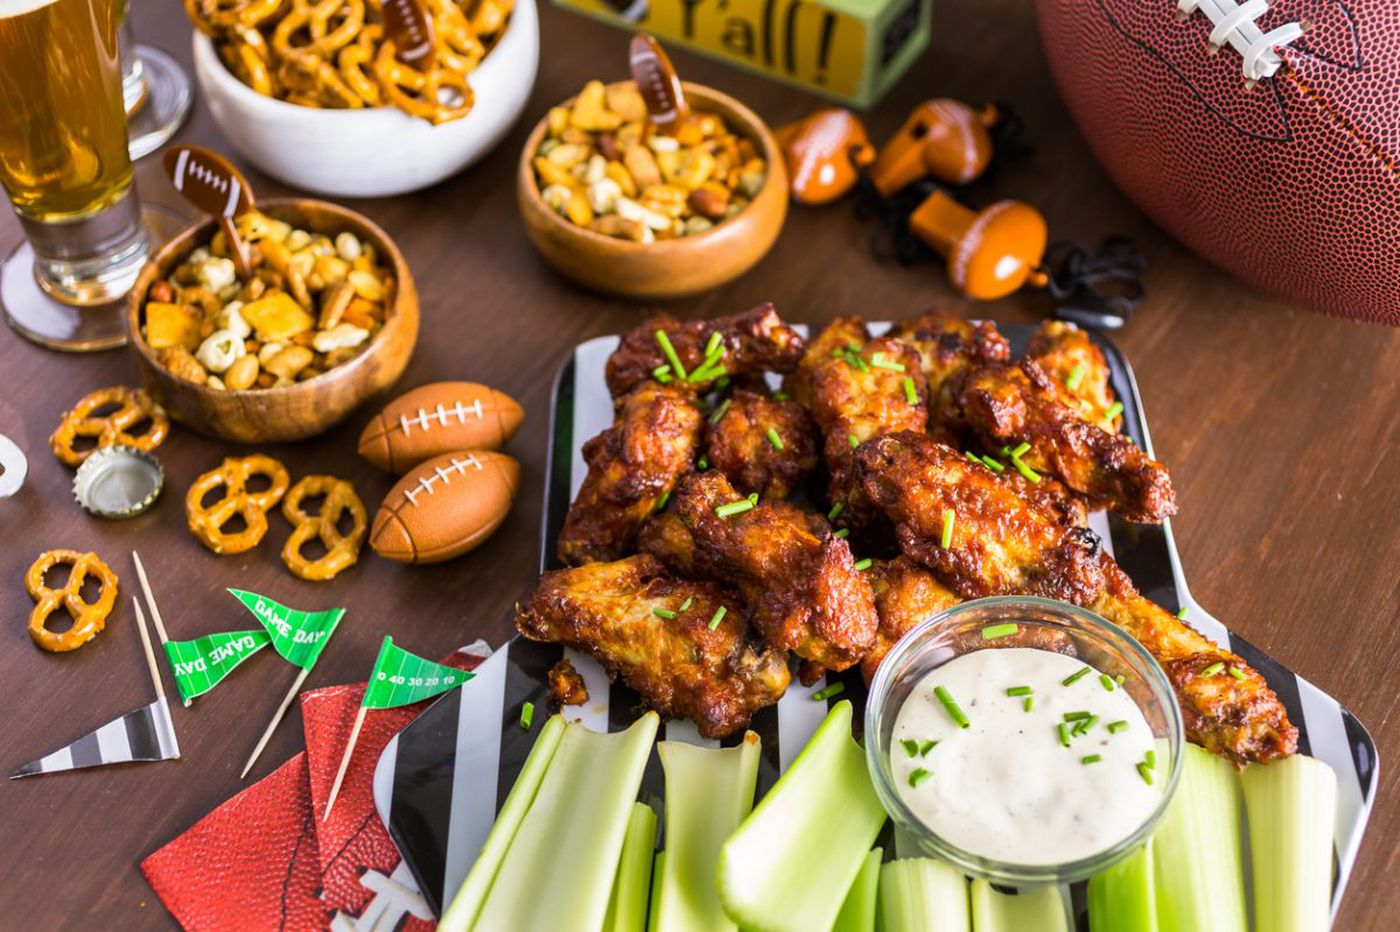 Tailgating for the Eagles game? Use these tips to avoid heart burn horrors